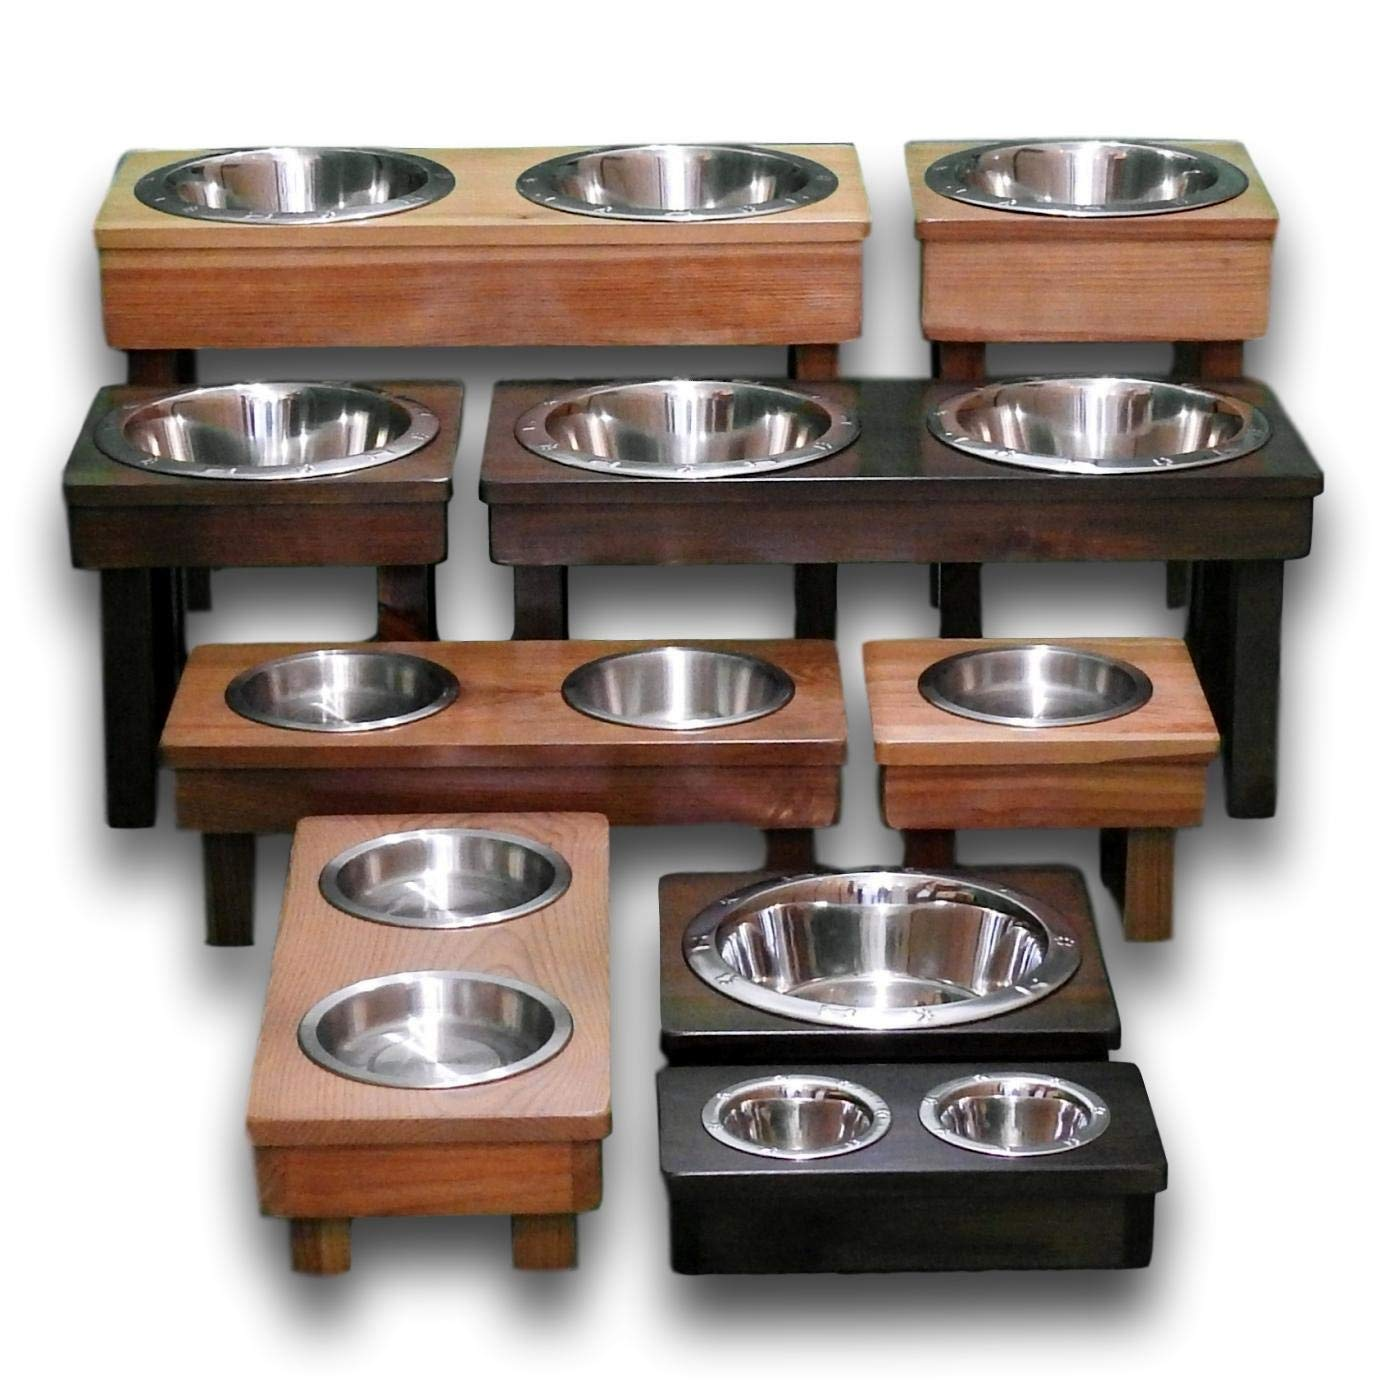 B071CKSCXR Raised Dog Bowls - Single & Double dish, Solid Wood, Dog Bowl Stands, Elevated Bowls - JUMBO, Large, Medium, Small, Toy & Teacup Sizes, Eco-Friendly, Non-Toxic- Handcrafted USA made 71WTvCHeOhL._SL1383_